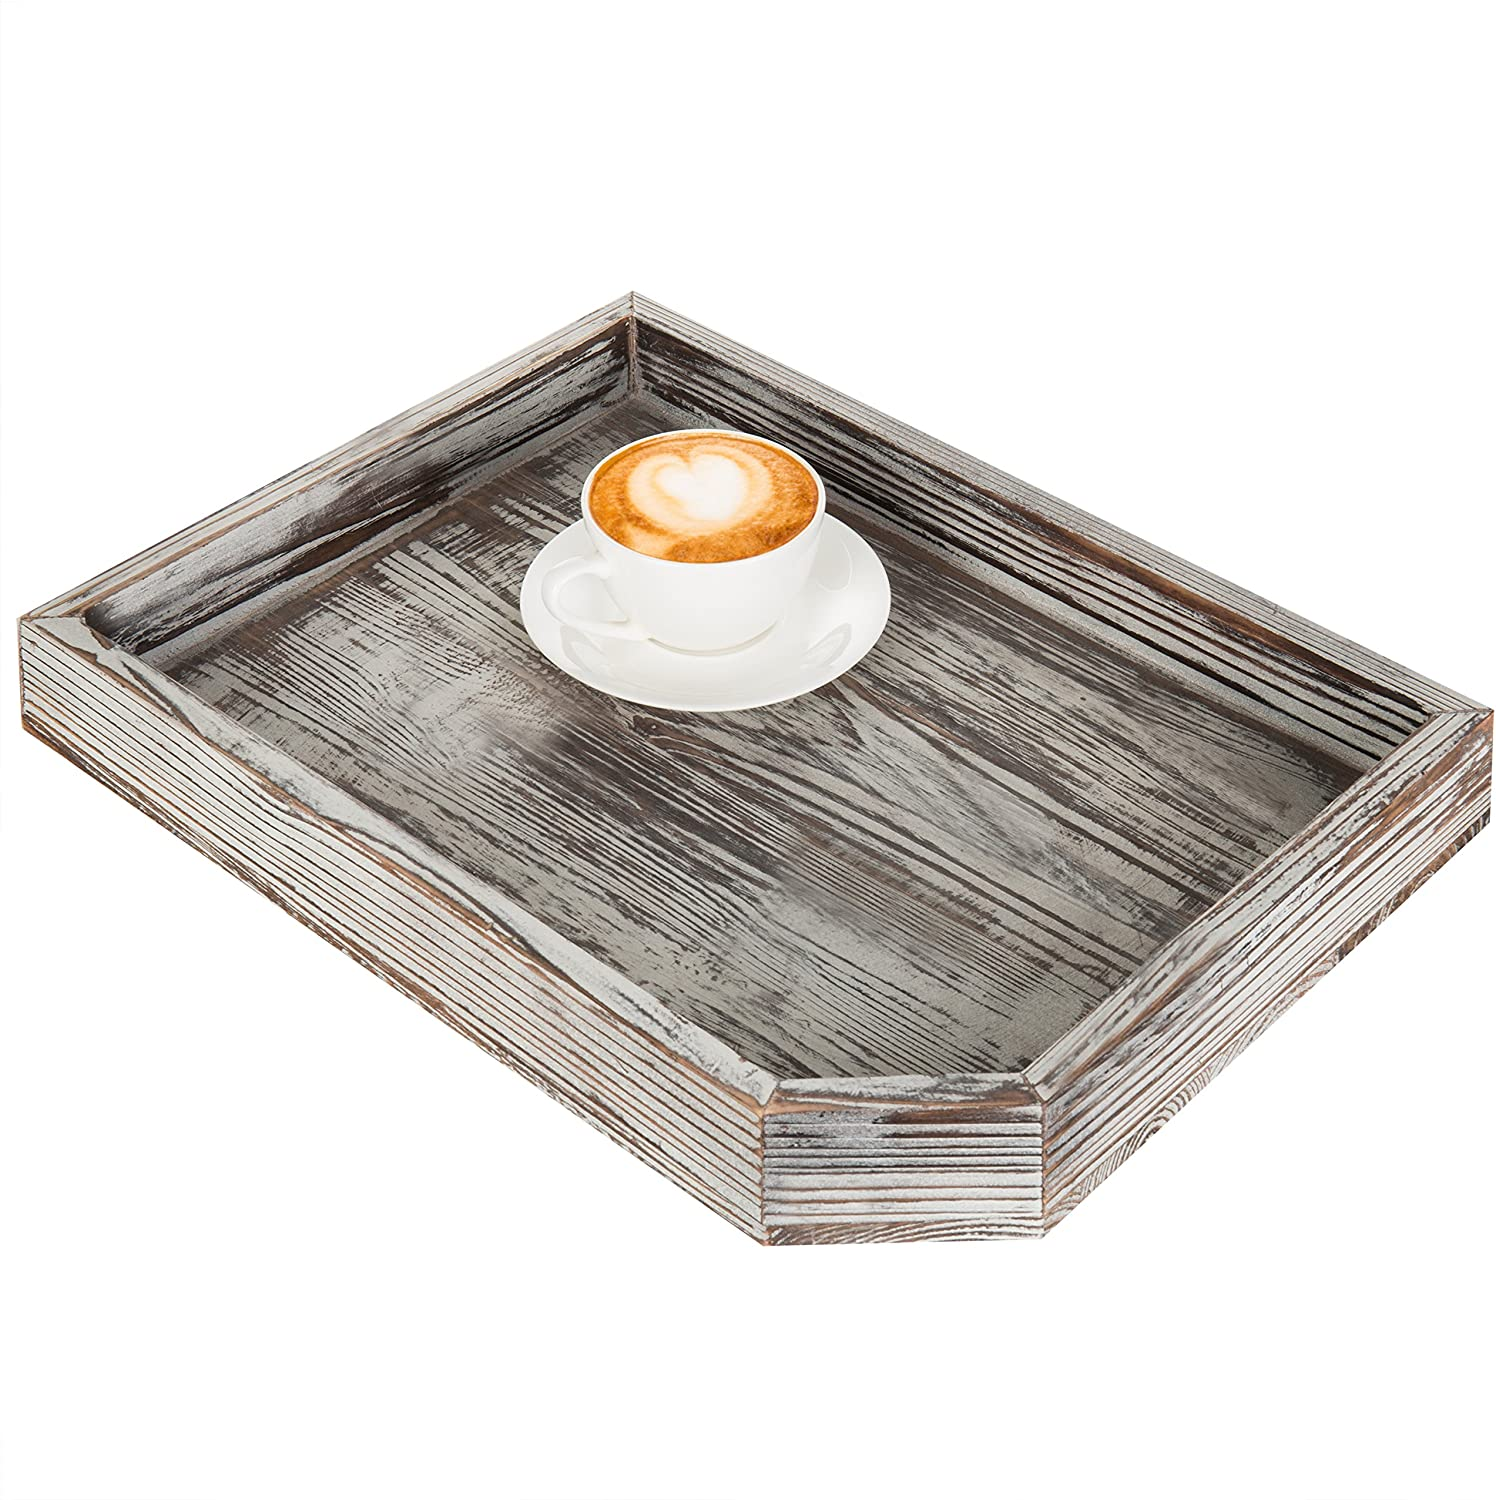 MyGift Vintage Distressed Brown Wood Breakfast Coffee Table Tray, Office Desktop File, Mail, Document Holder